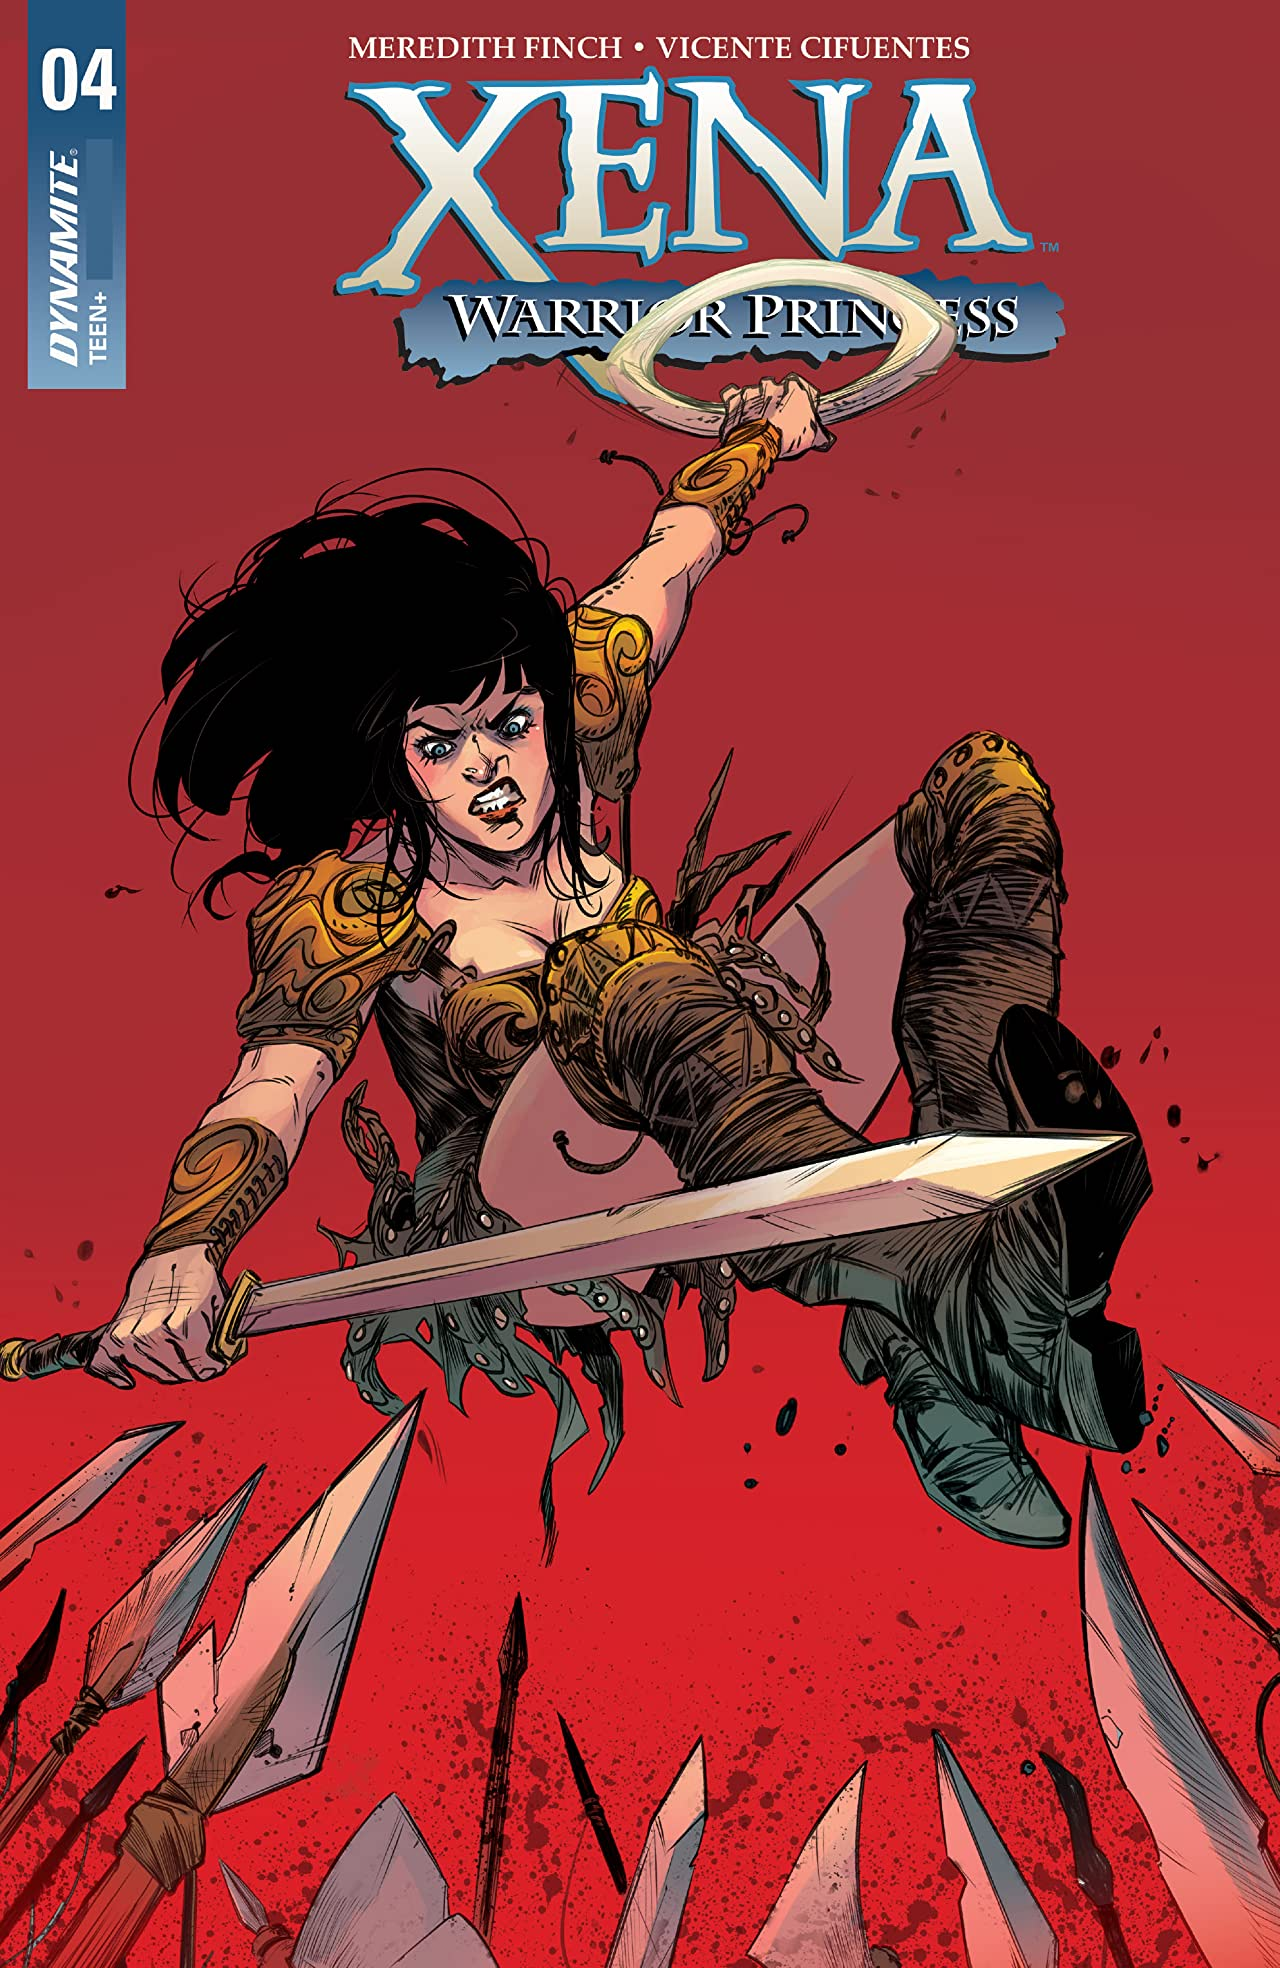 Xena: Warrior Princess Vol. 4 #4